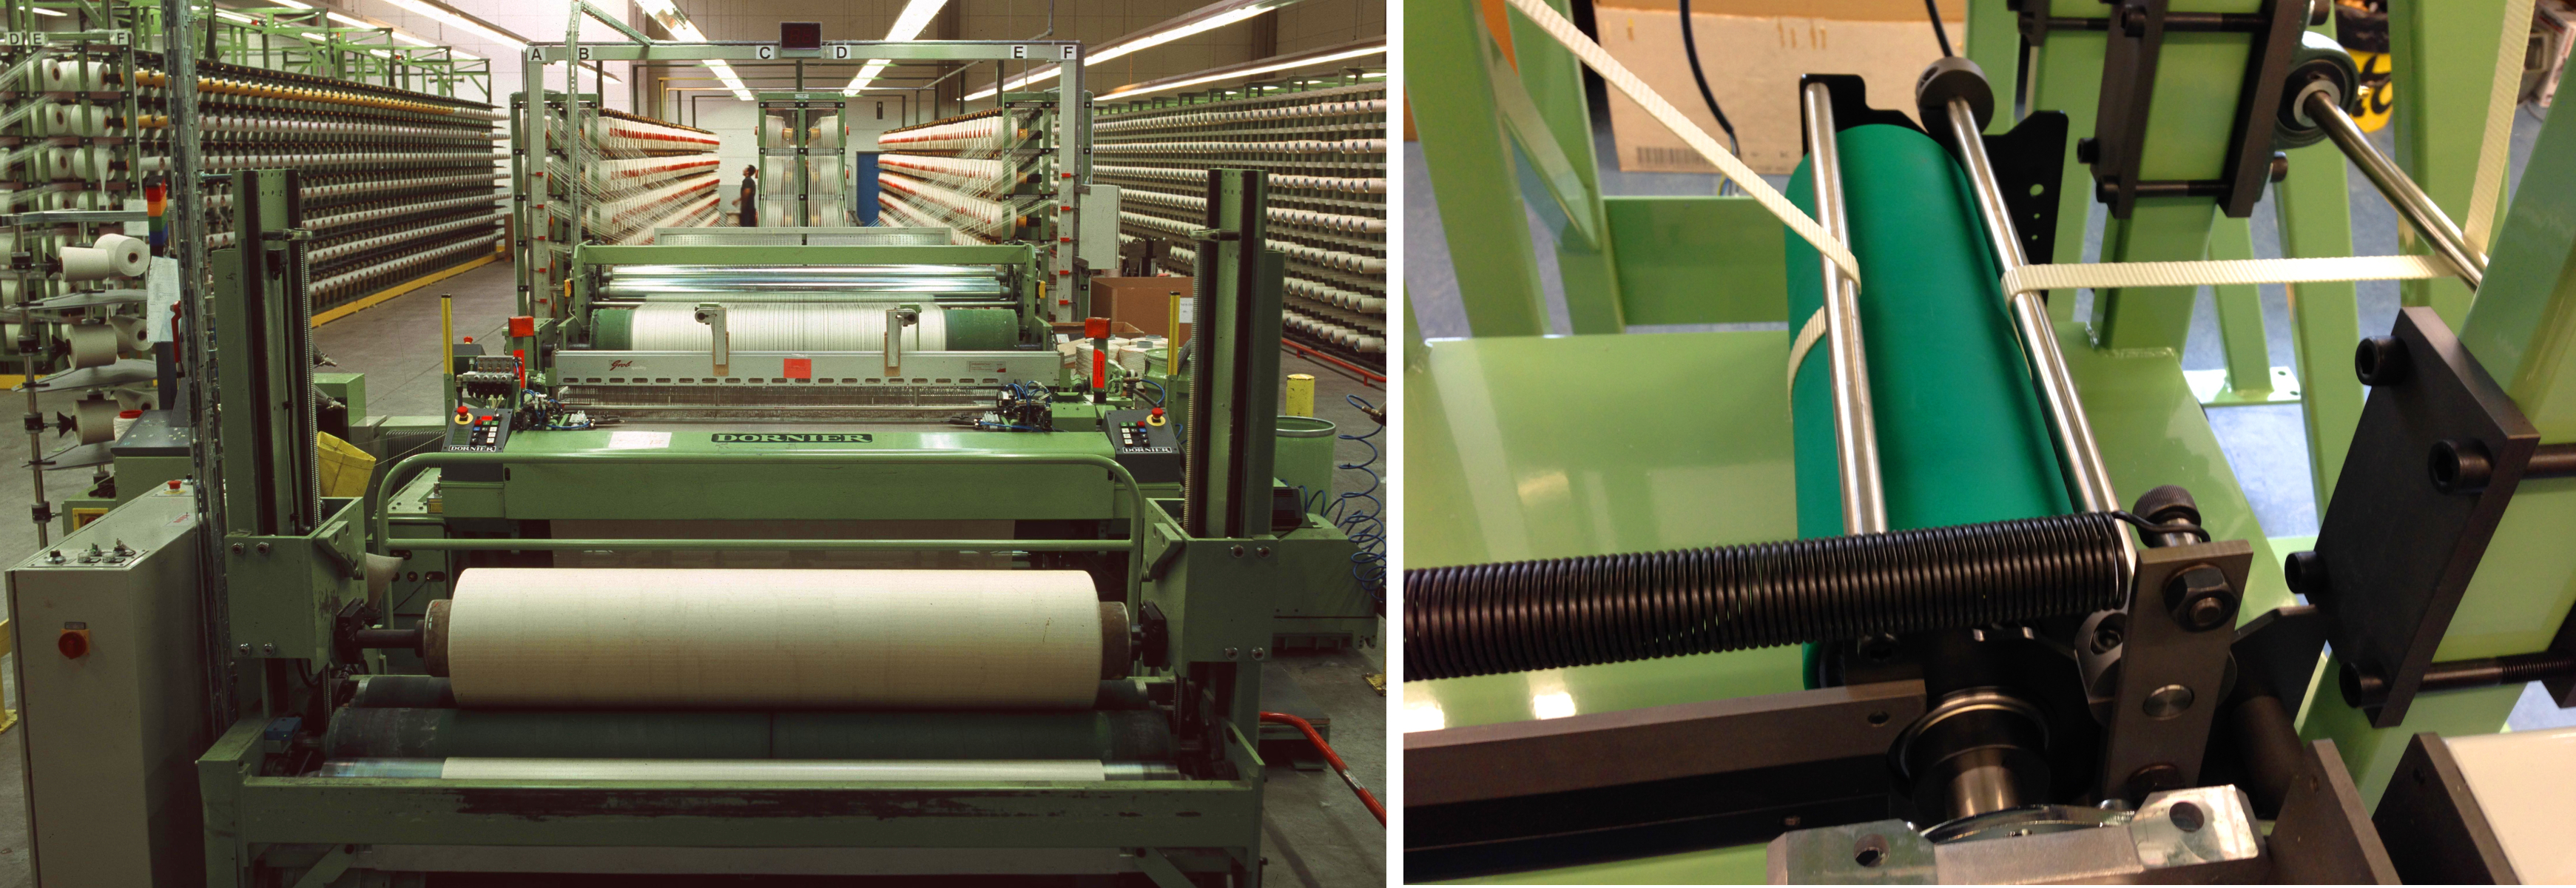 (l) Warp F3eeding System with Unrolling Creel for Tire Cord Fabric / (r) Warp Feeding System for narrow webbings